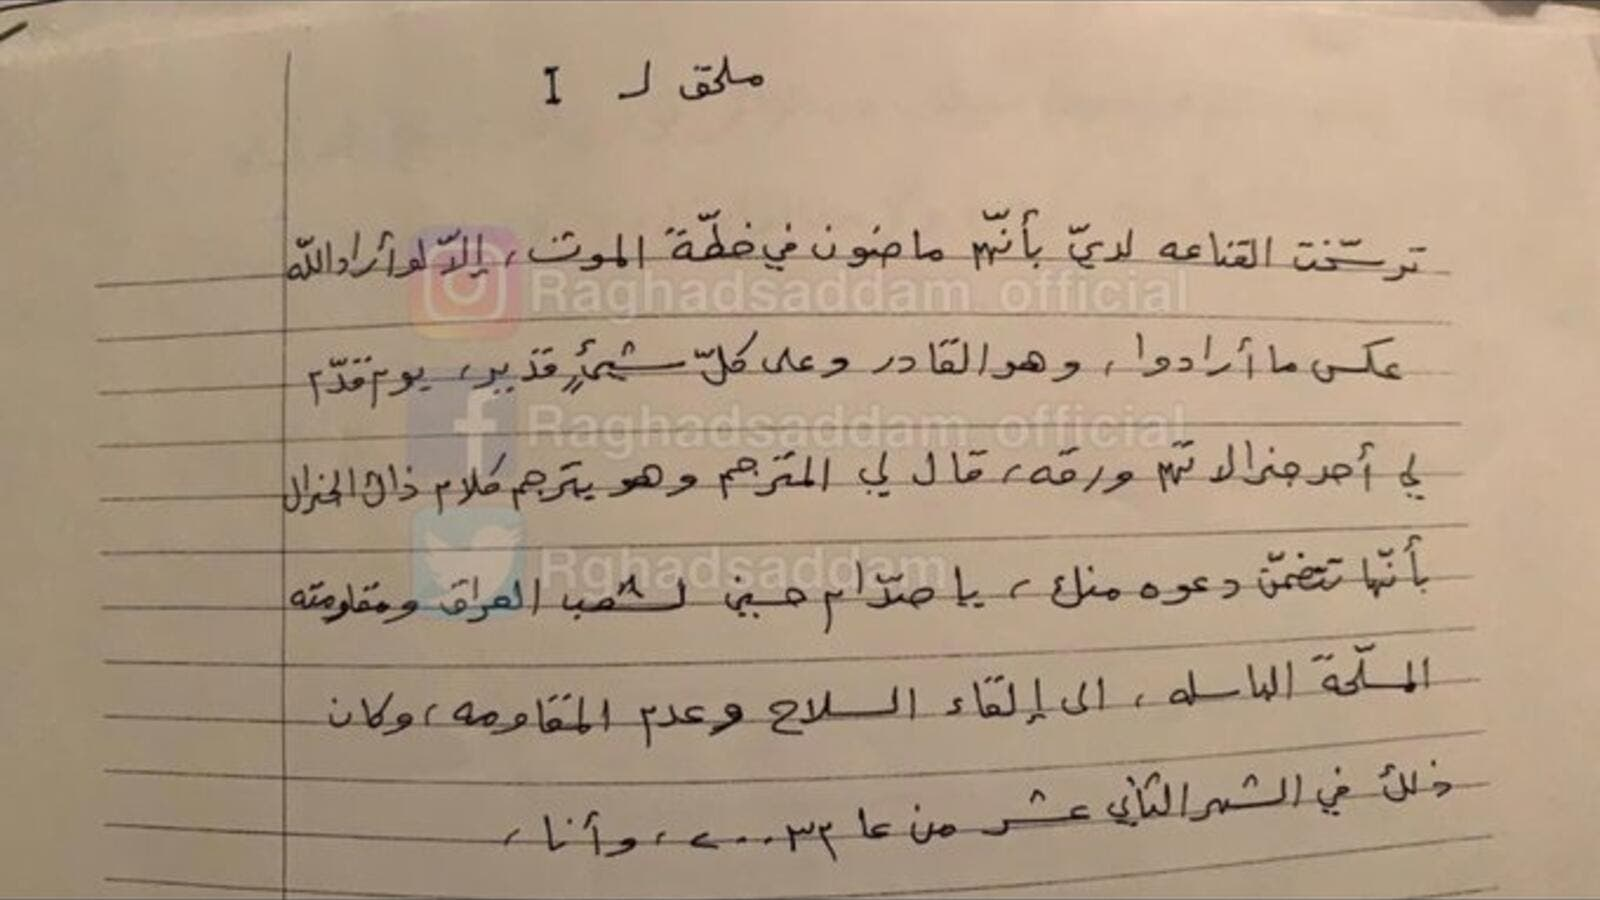 A letter was written by Saddam Hussein in 2003 while he is in prison after he was captured by US forces. (Twitter)